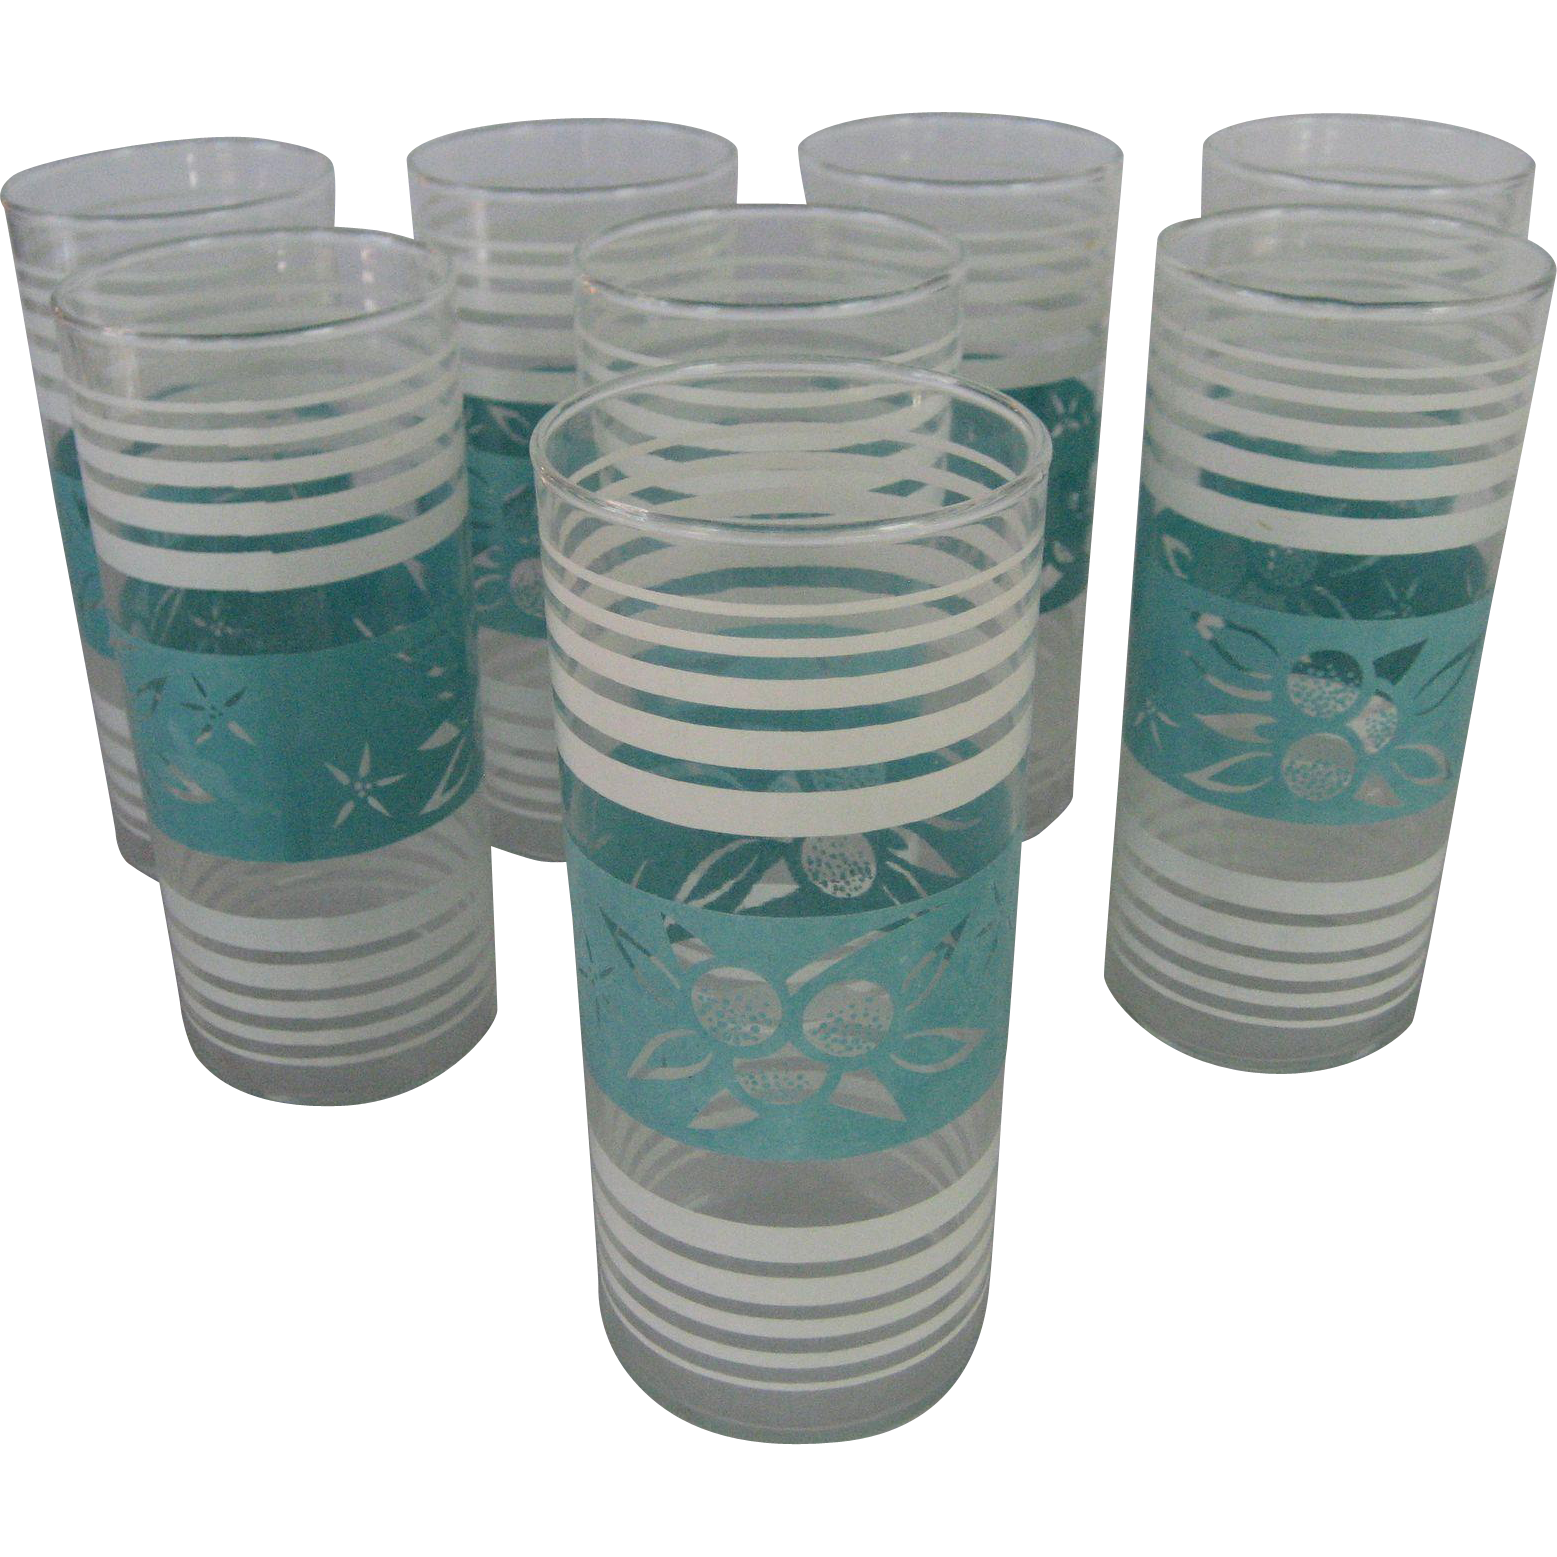 Set of 8 Aqua/Turquoise and White Drinking Glasses